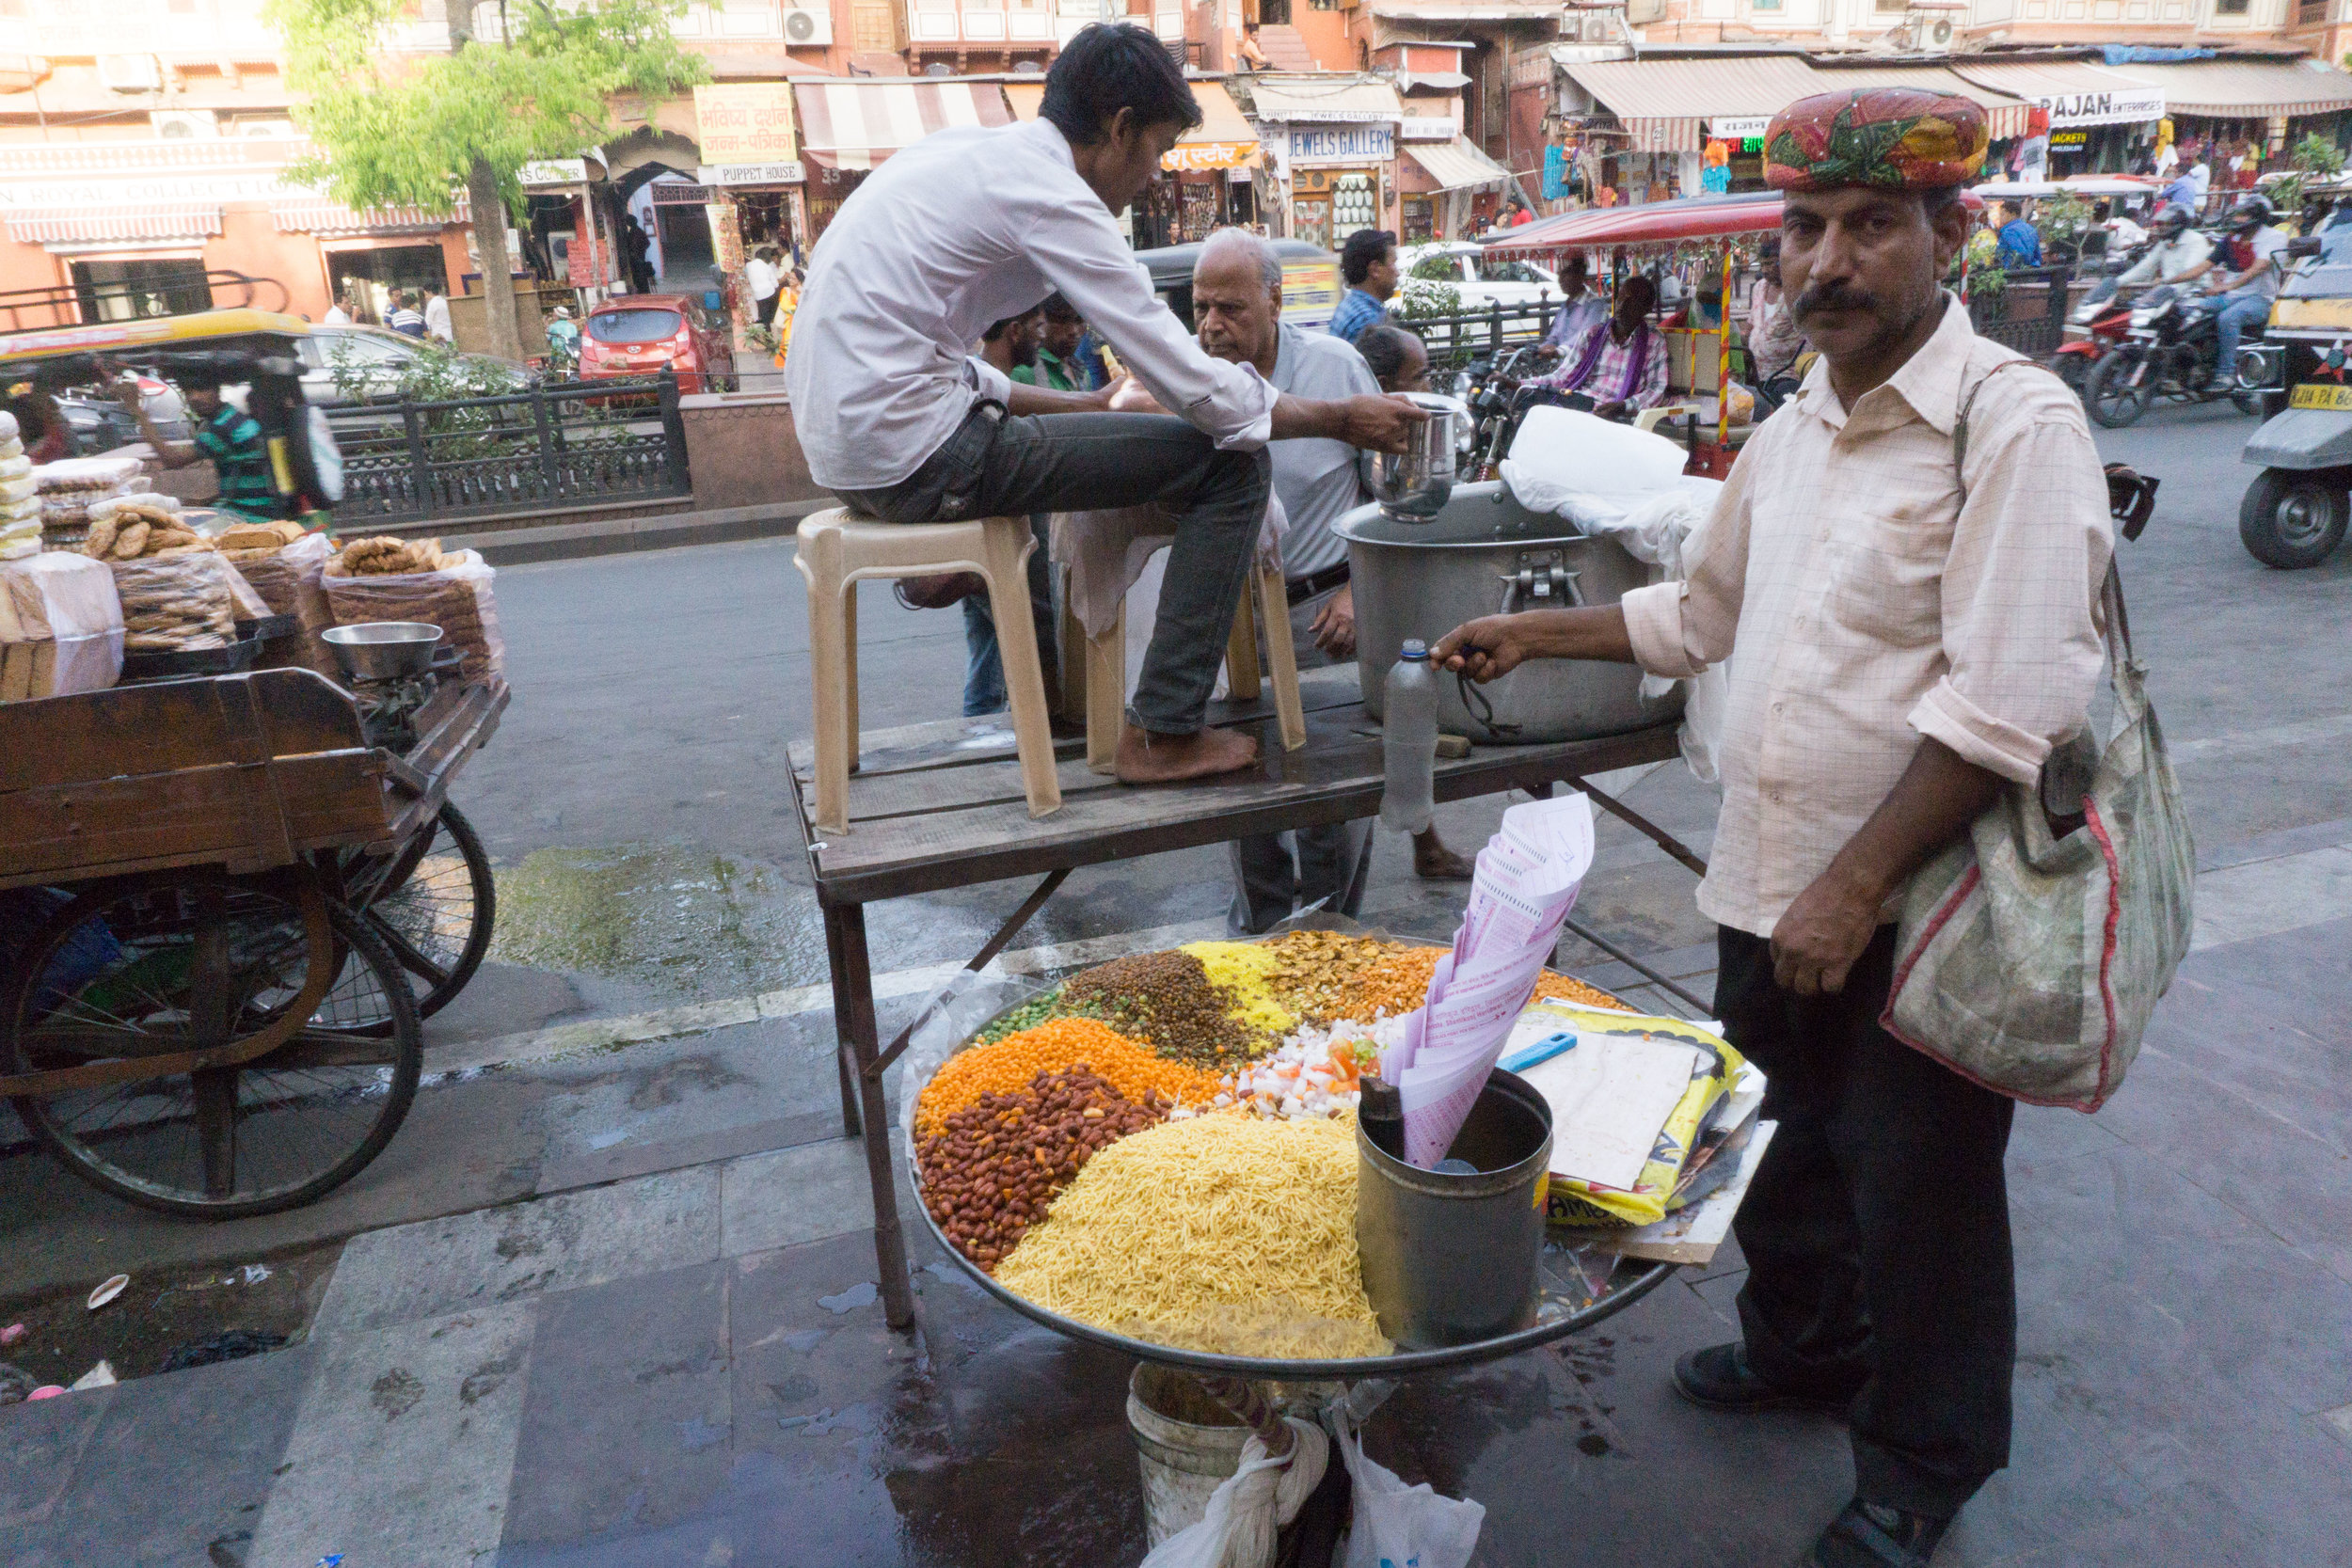 One of our favorite street foods - Bhel